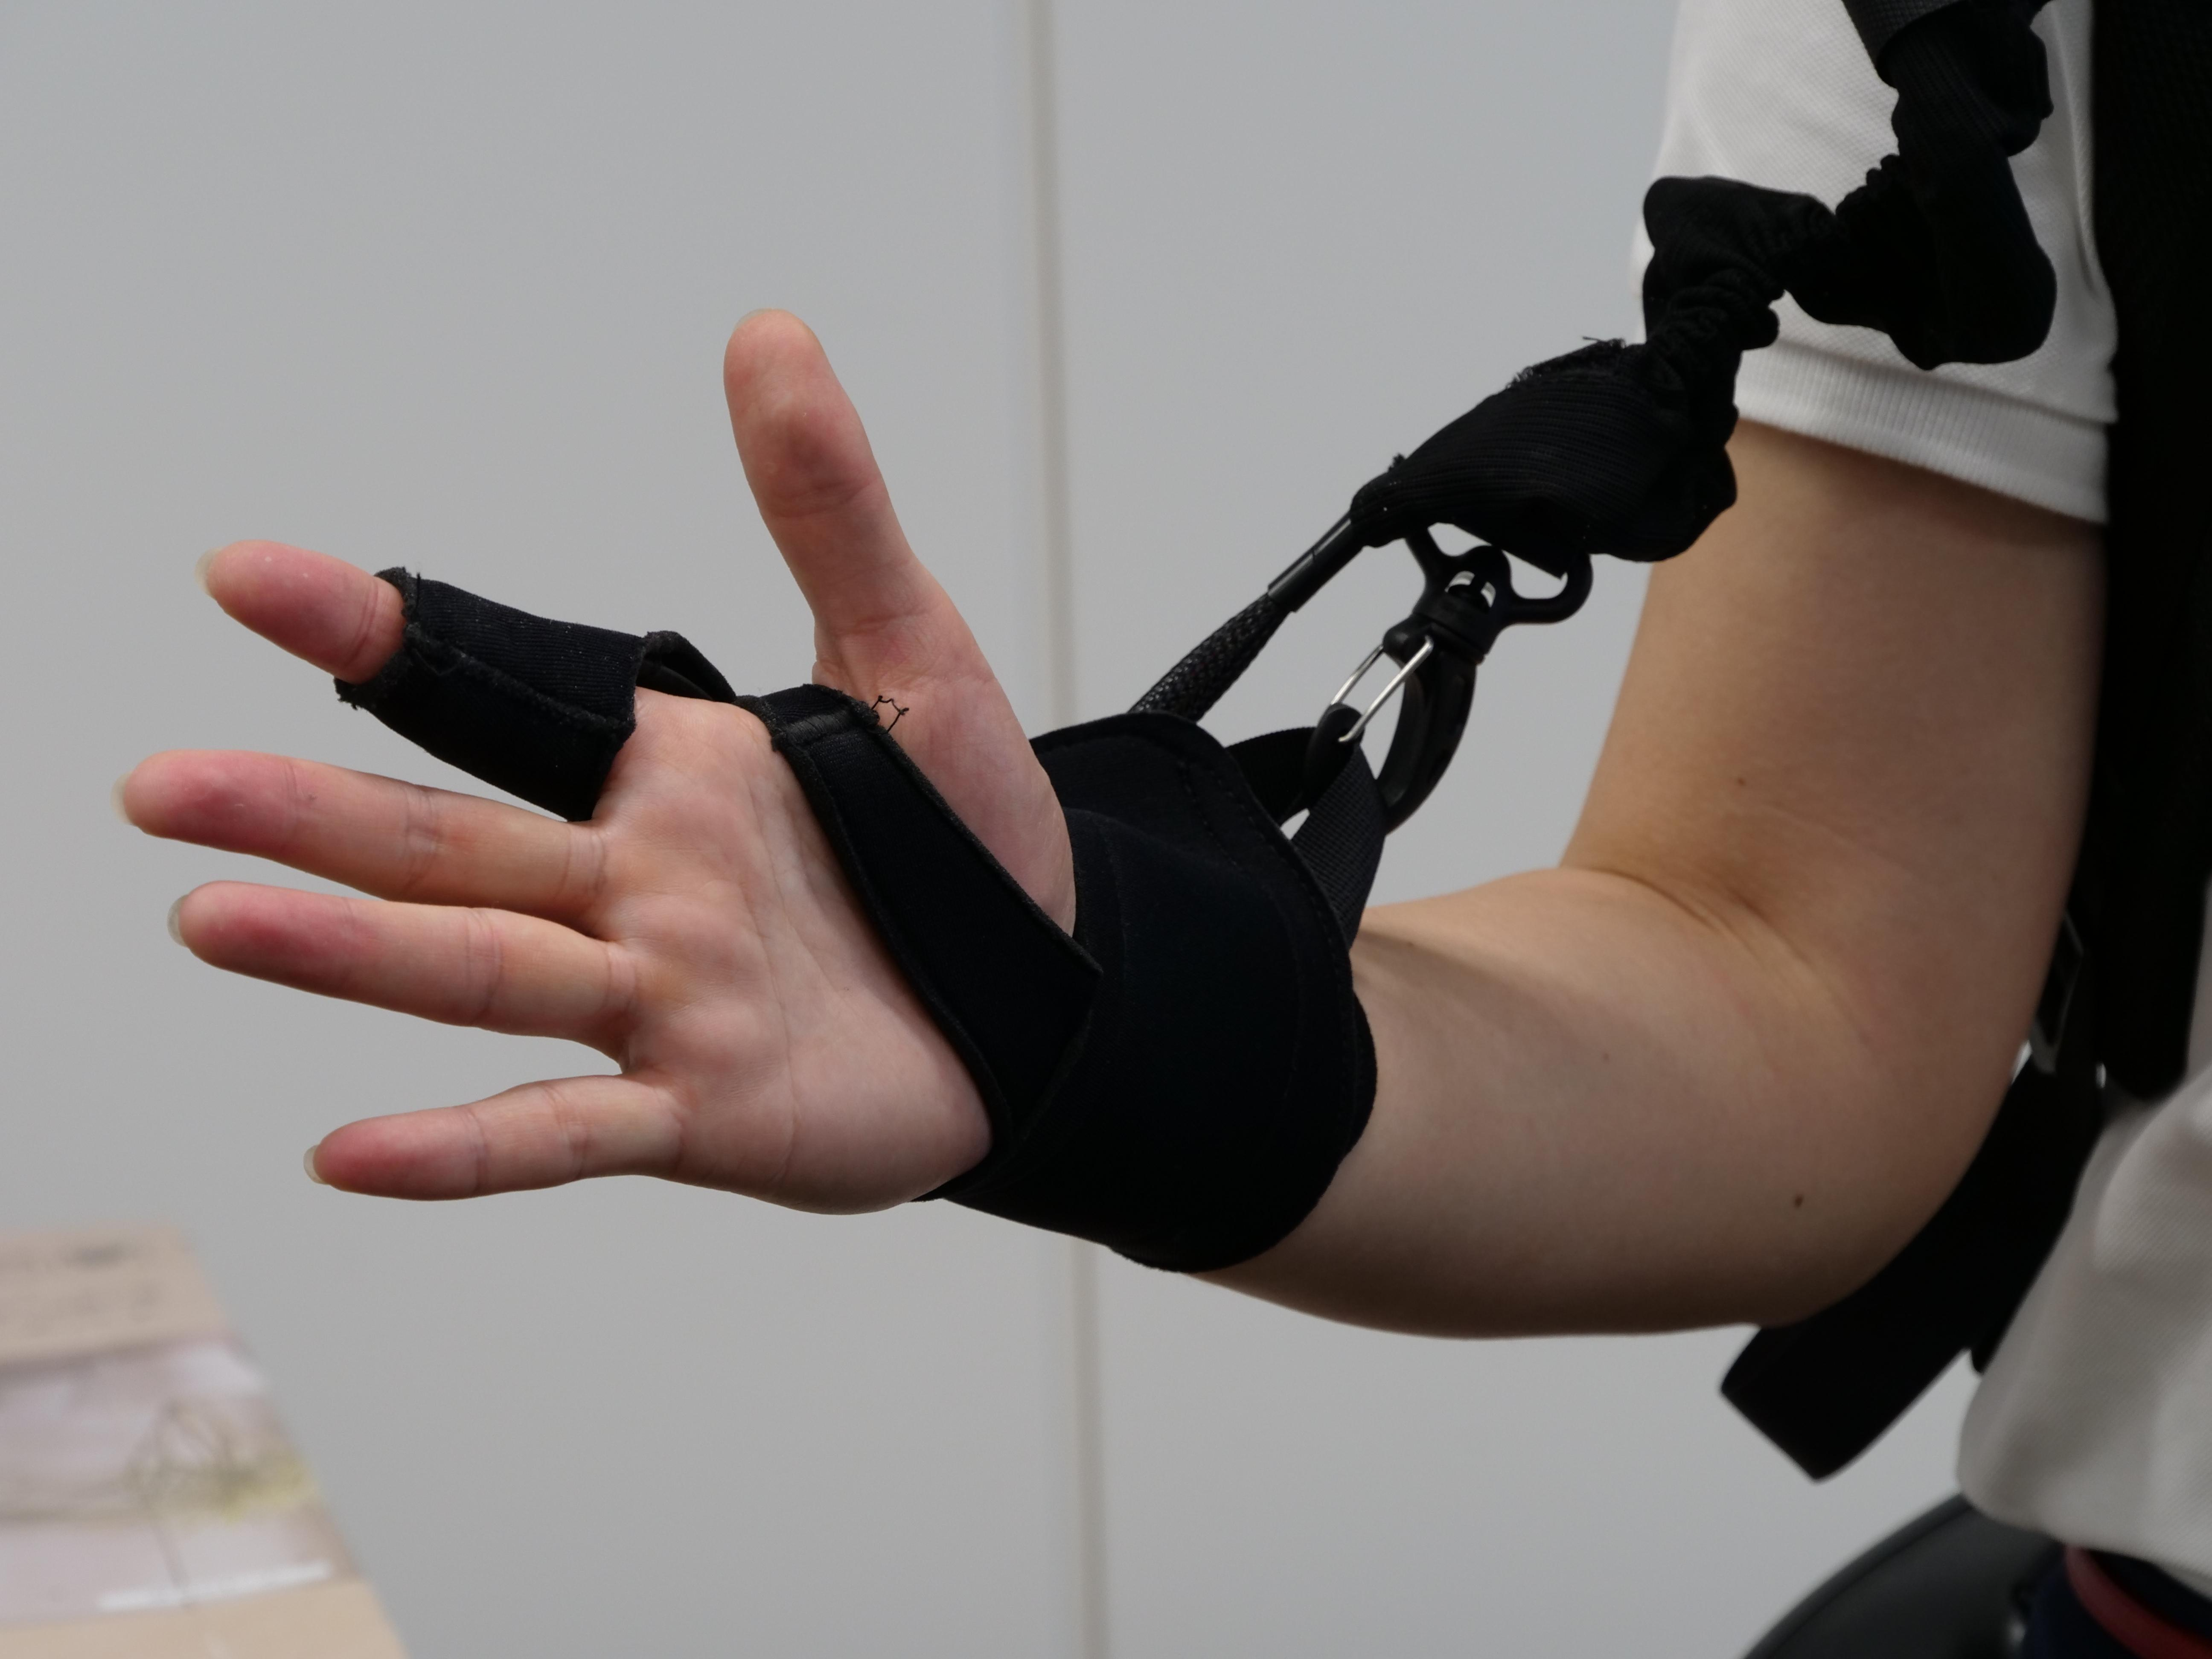 photo: A Powered Wear ATOUN MODEL Y for waist with arm support function part, the prototype to be tested, was demonstrated.